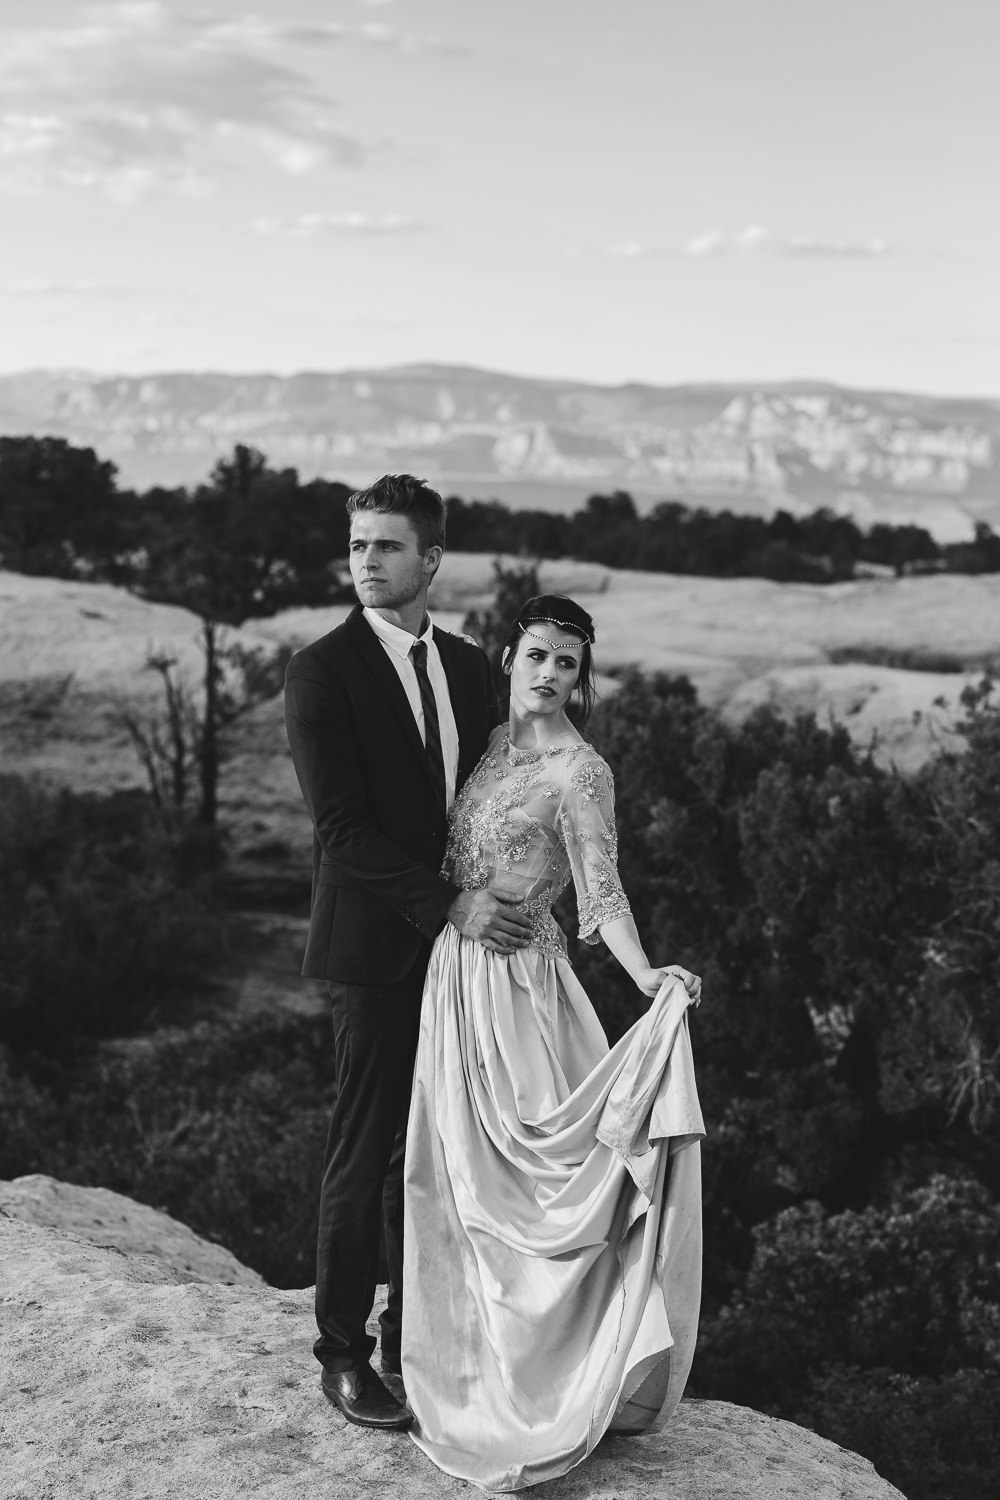 KyleLovesTori-Zion-National-Park-Adventure-Bridals-13.jpg